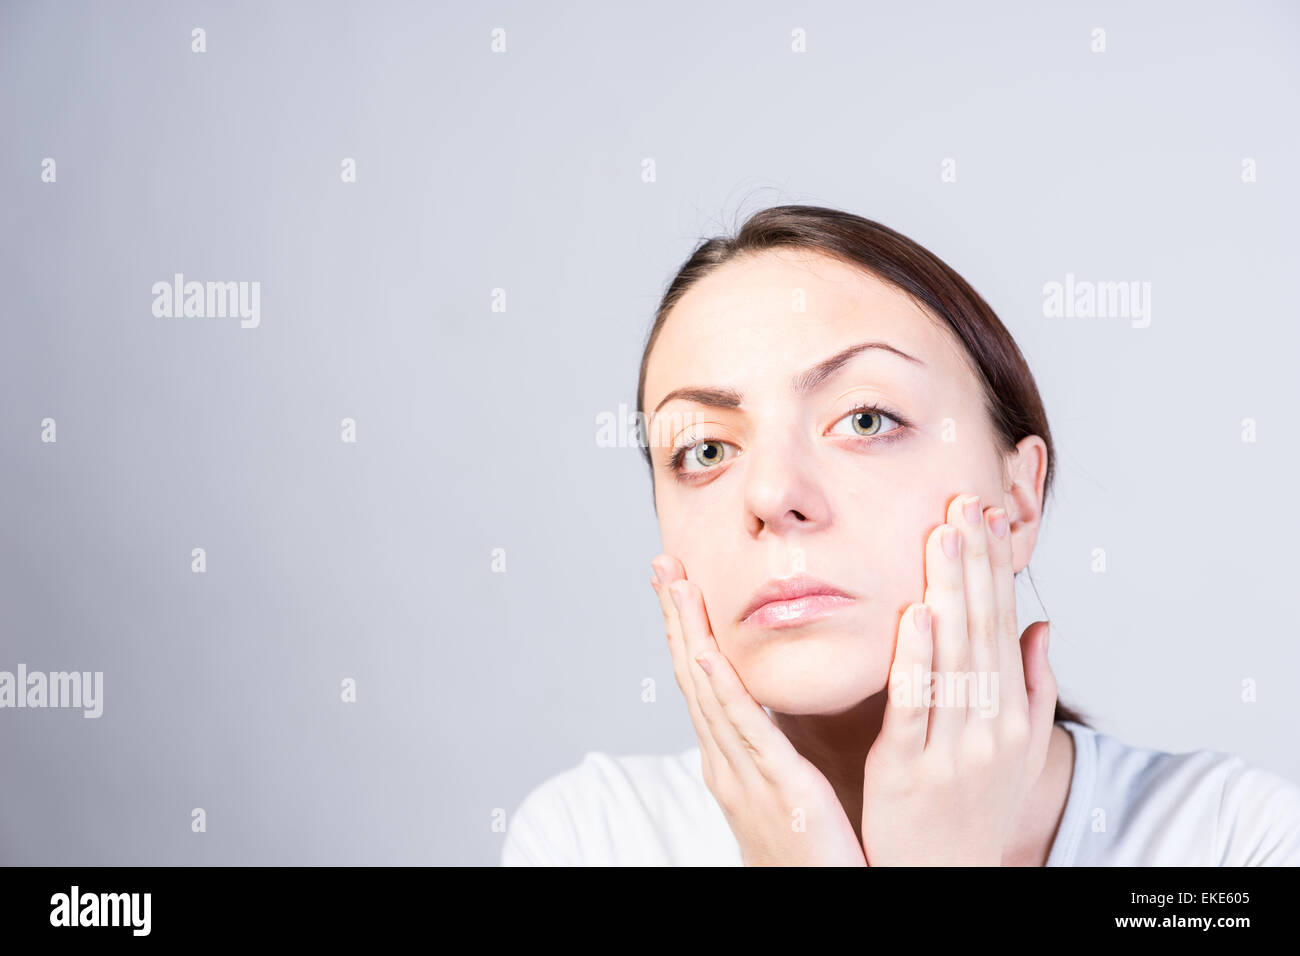 Close up Serious Young Woman Touching her Face with Two Hands While Looking at the Camera. Captured in Studio with - Stock Image